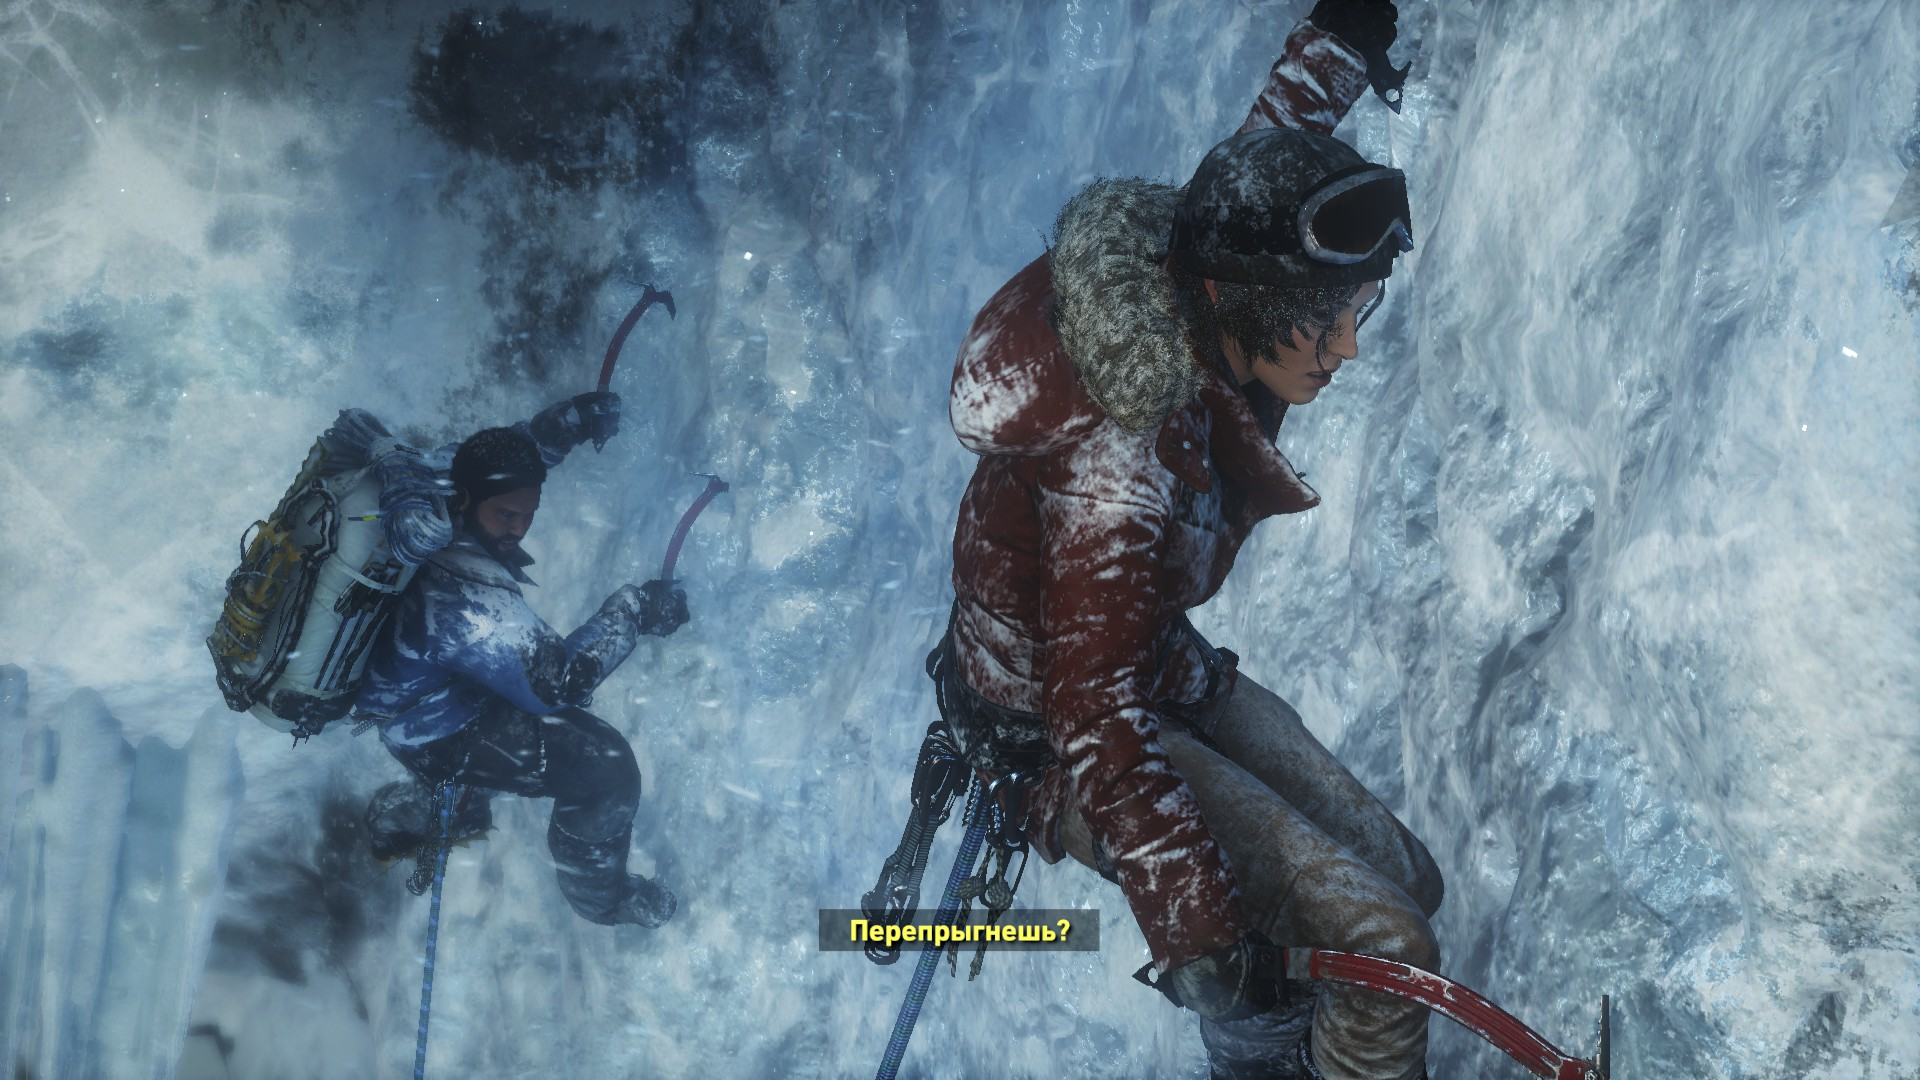 20171203195221_1.jpg - Rise of the Tomb Raider